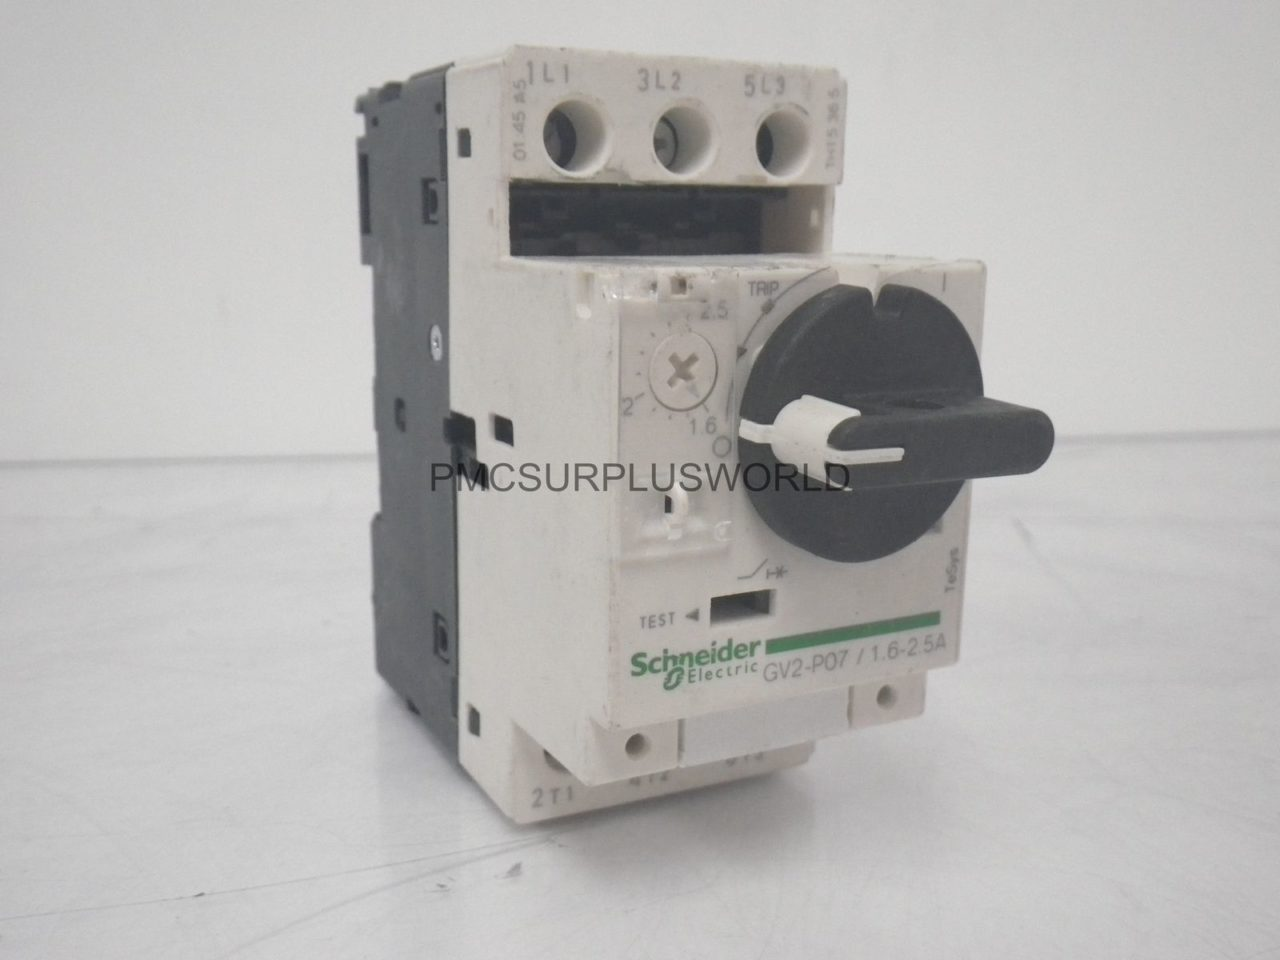 Gv2 Po7 Gv2po7 Schneider Electric 16 25a Motor Circuit Breaker 240 3 Phase Contactor Wiring